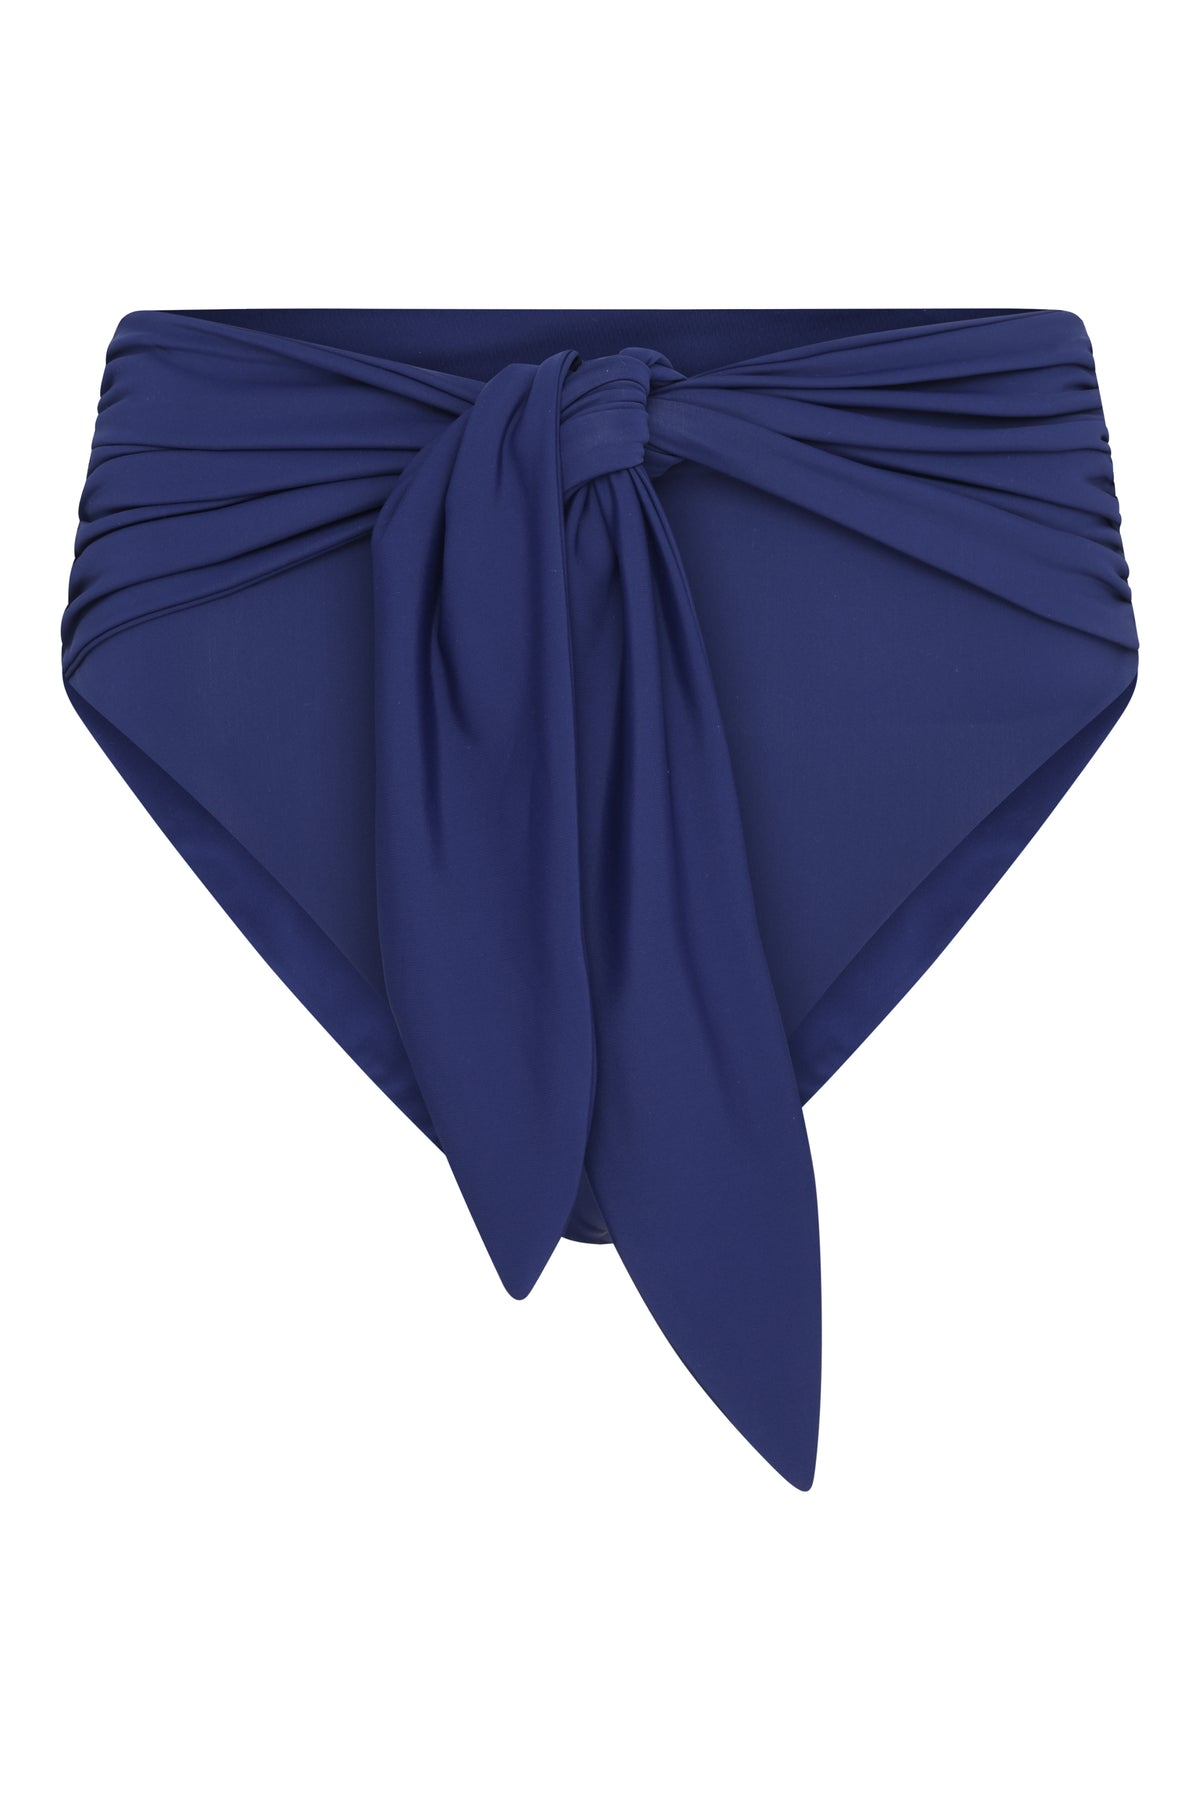 Dee high waist bottoms -Midnight Blue.